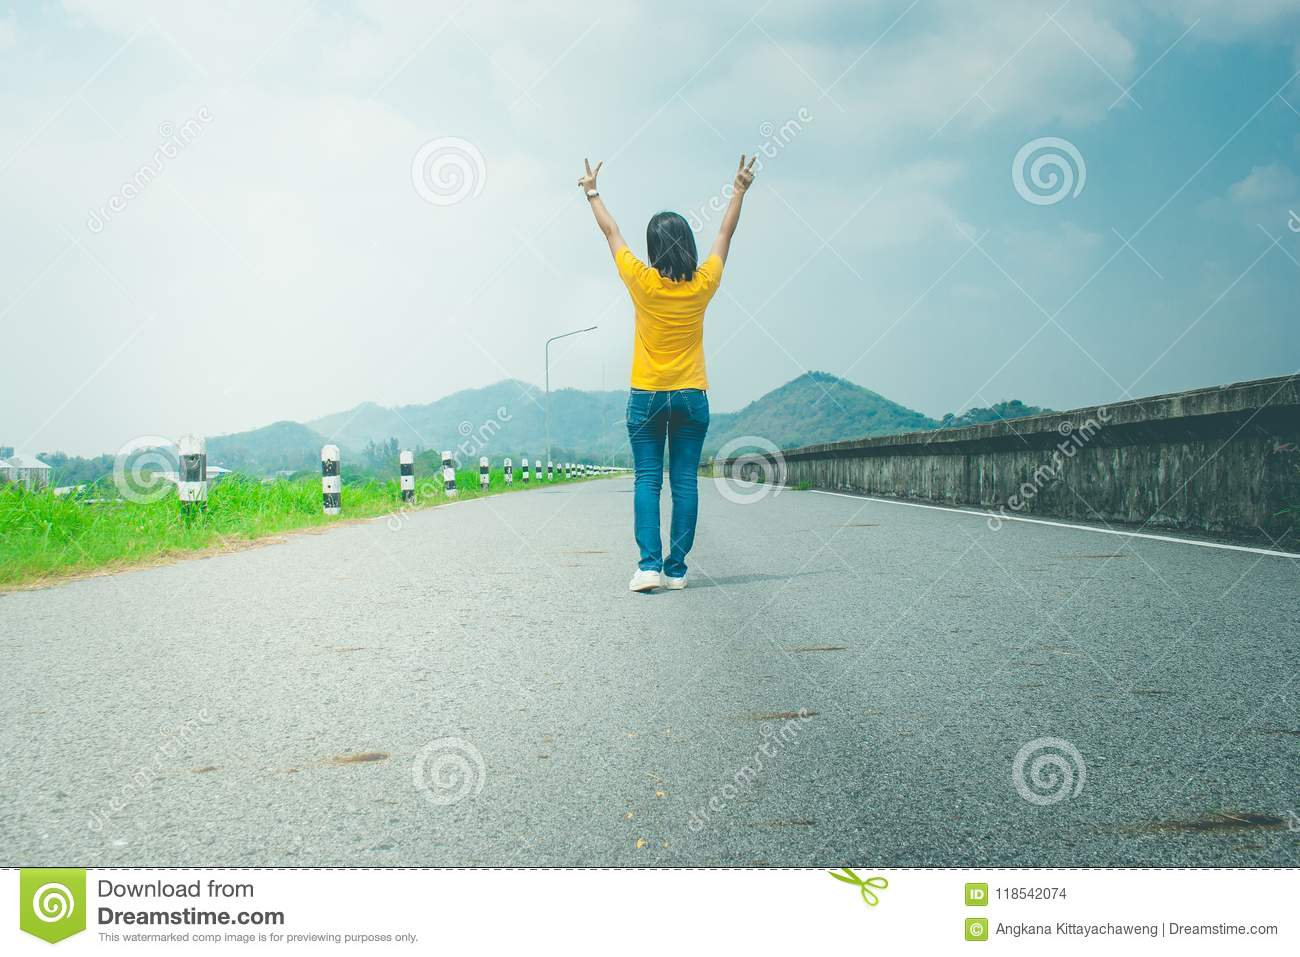 Alone woman traveler or backpacker walking along countryside road along side with reservoir, she raise hands over head.